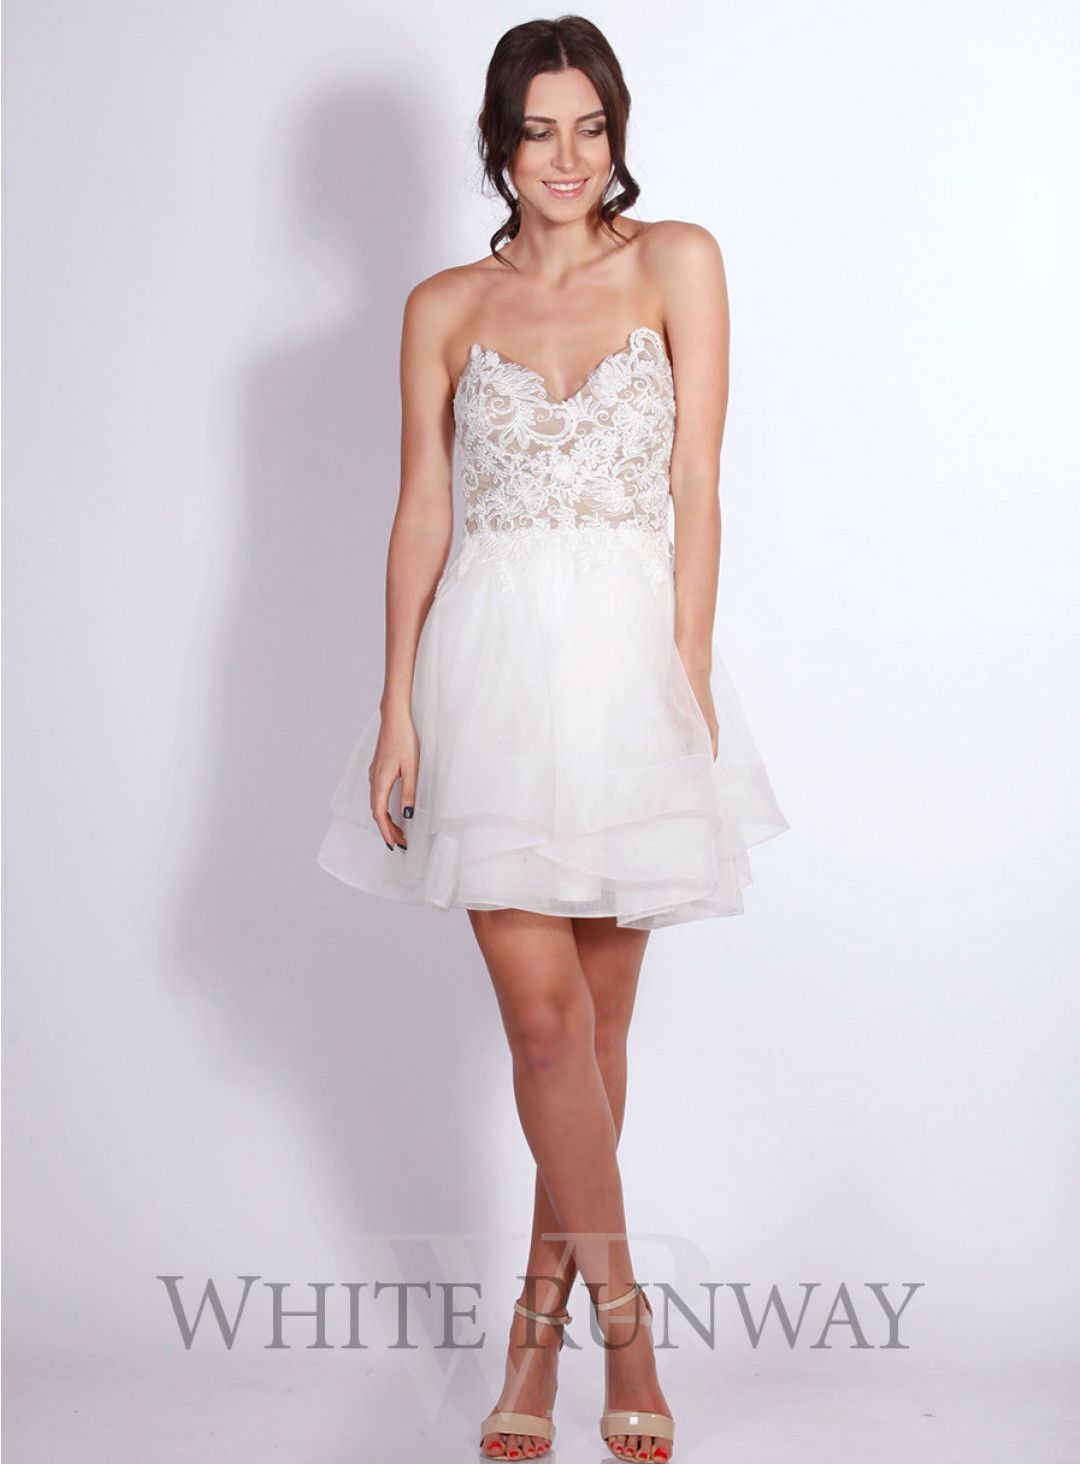 Strapless fitted lace wedding dresses  Alaria Tulle Dress A chic cocktail dress by Jadore A strapless